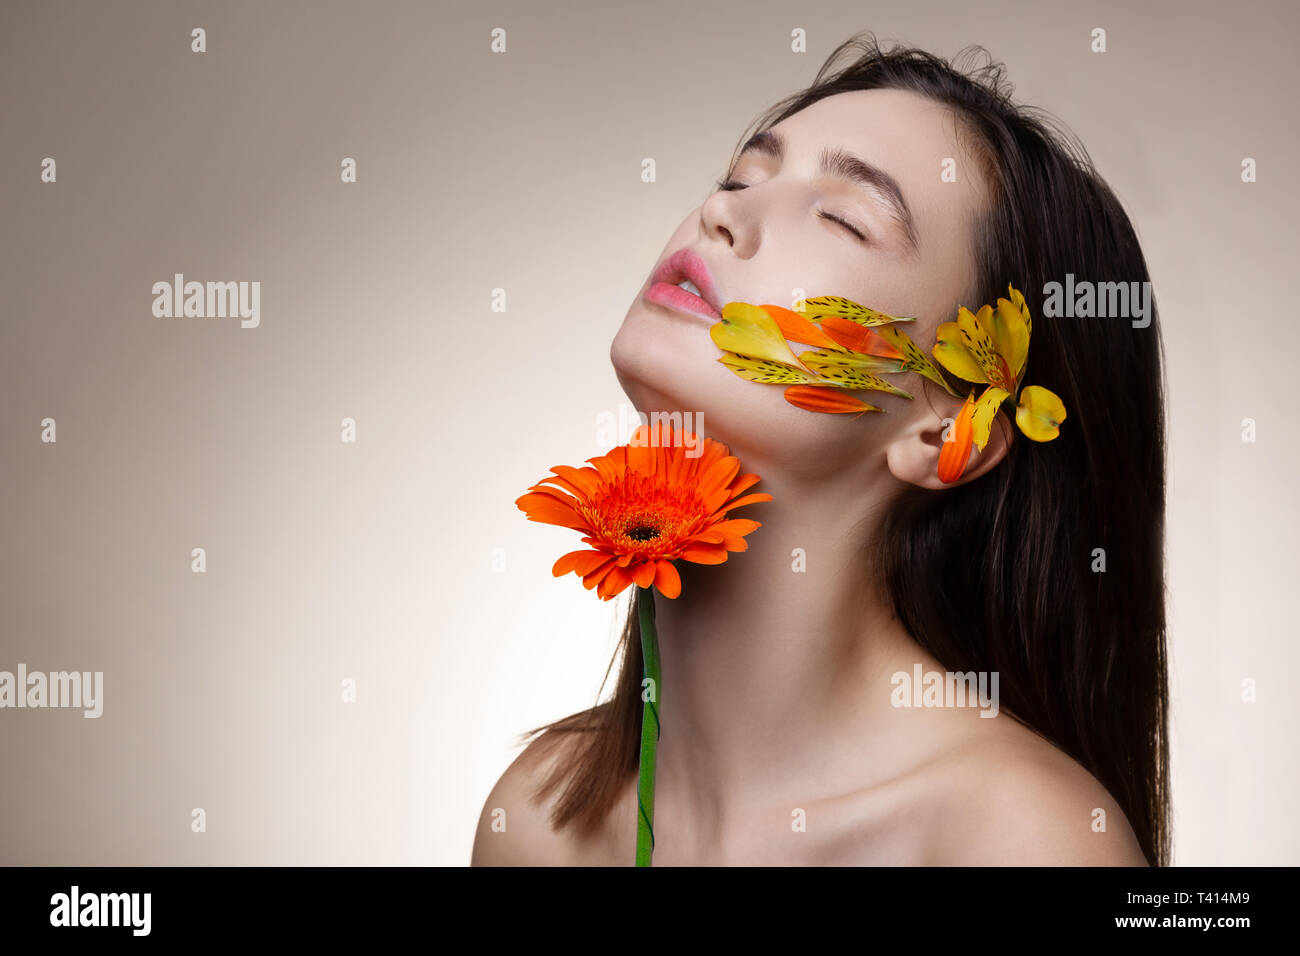 Model getting true satisfaction while posing with flowers - Stock Image